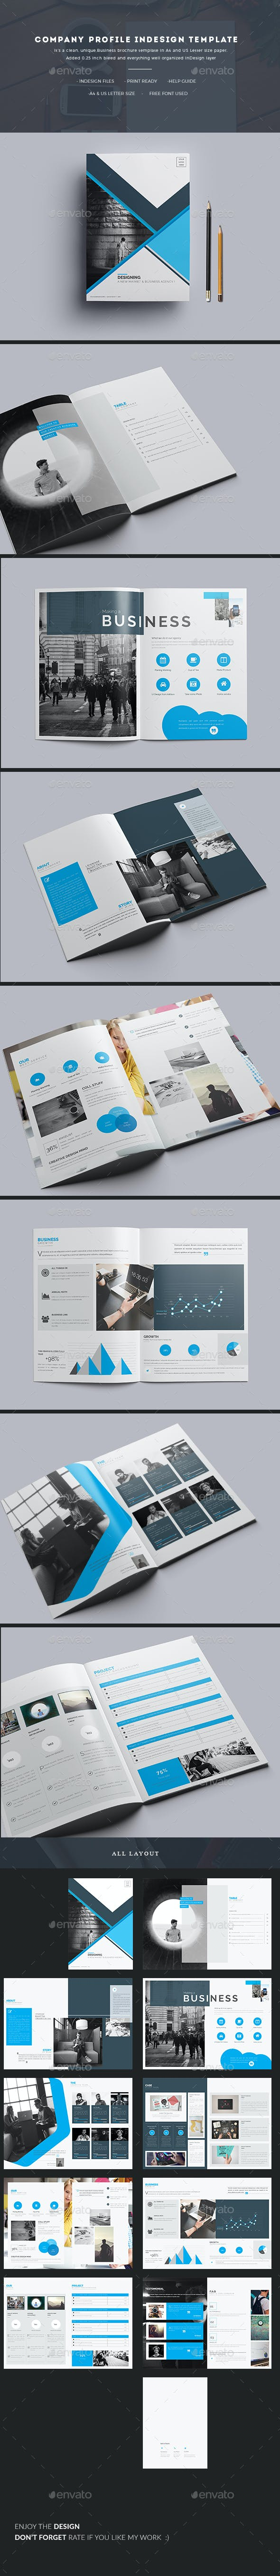 Company Profile Indesign Template By Addaxx Graphicriver